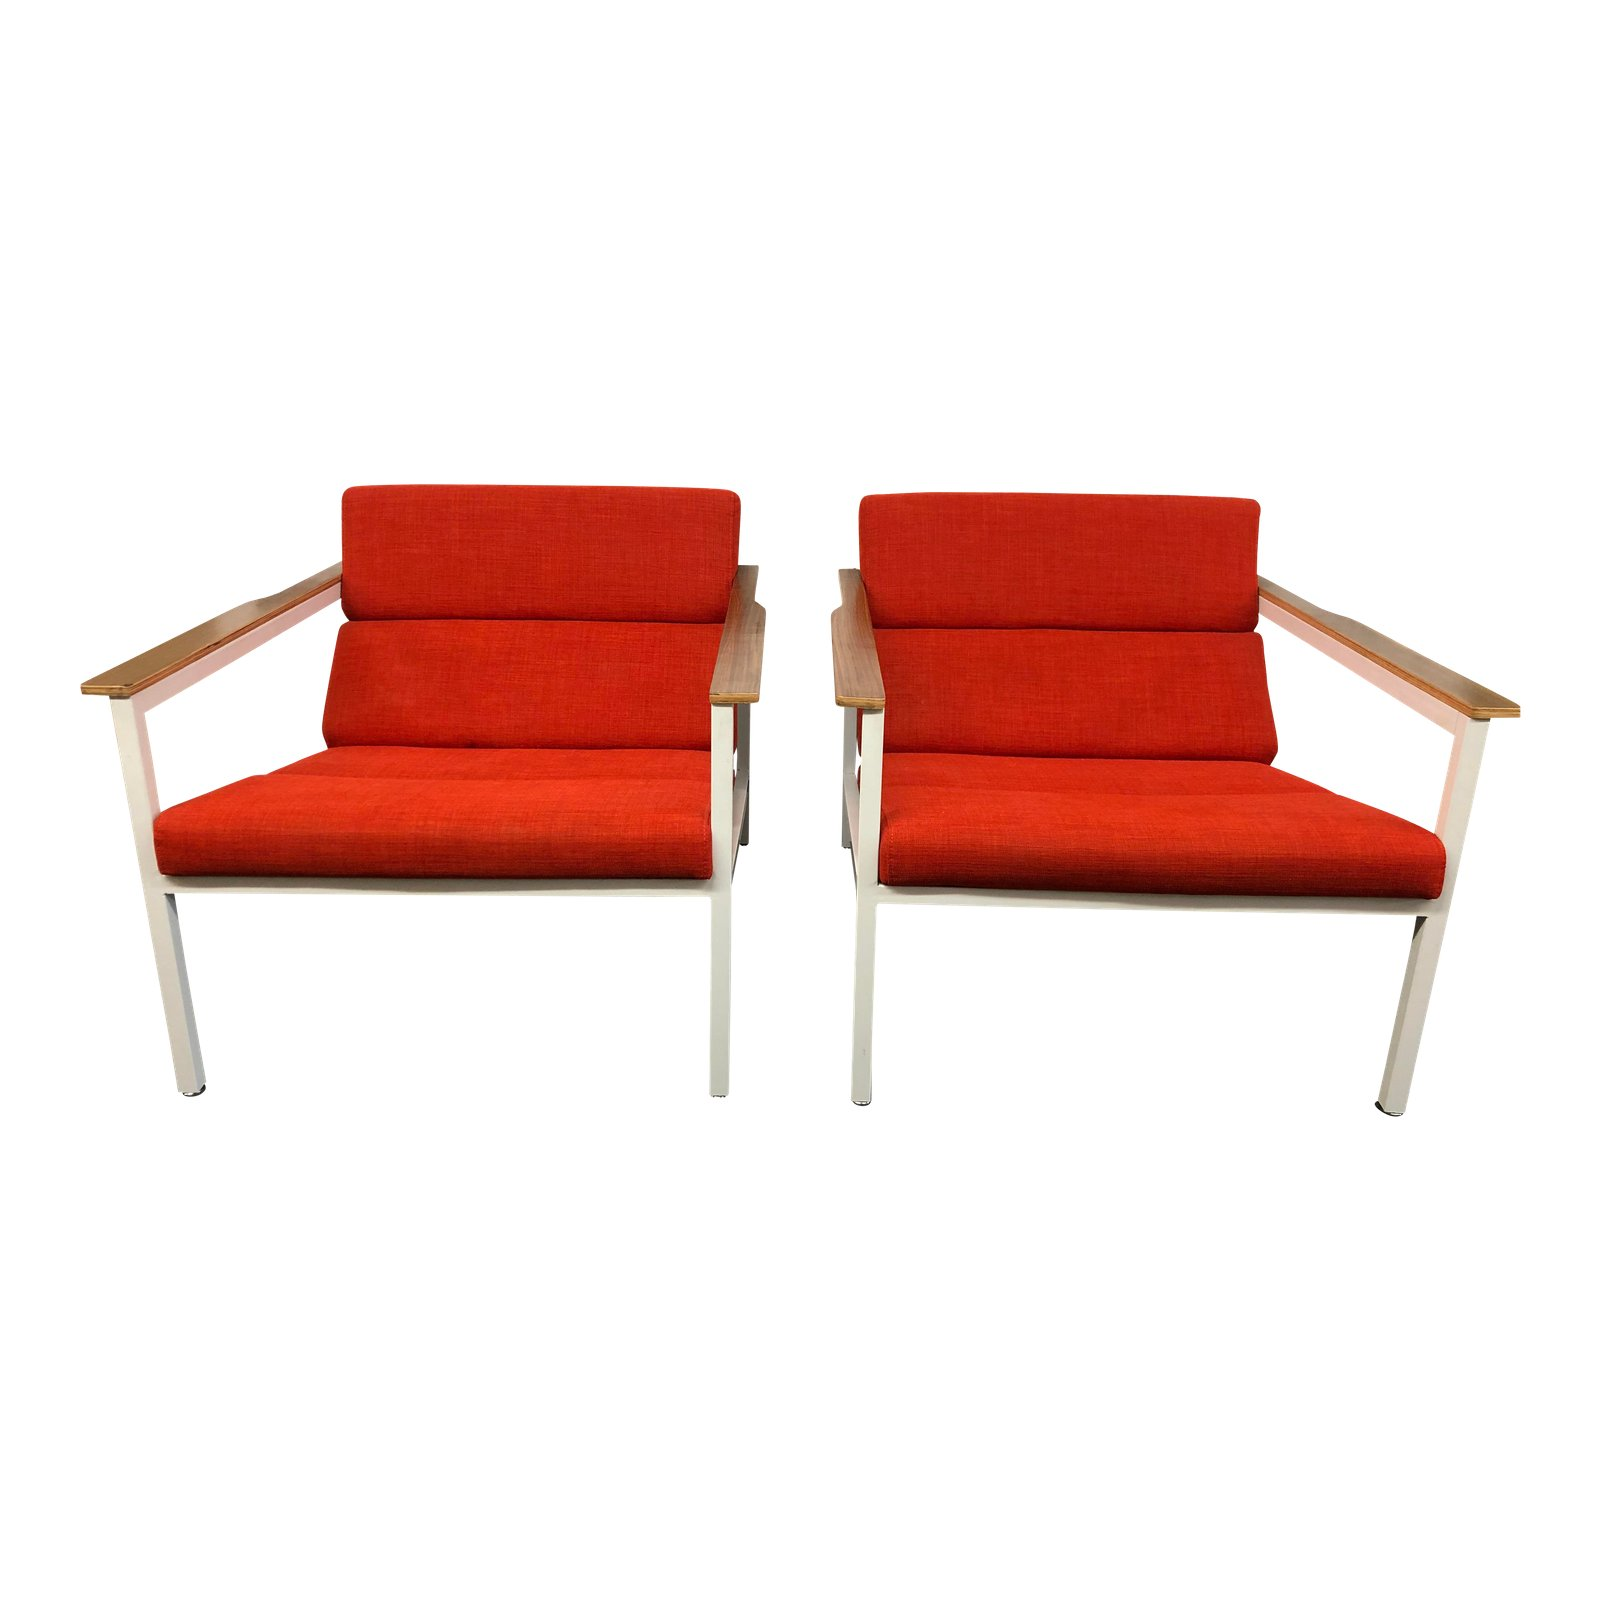 Astounding Halifax Chair By Gus Modern A Pair Original Price 1 990 Download Free Architecture Designs Viewormadebymaigaardcom